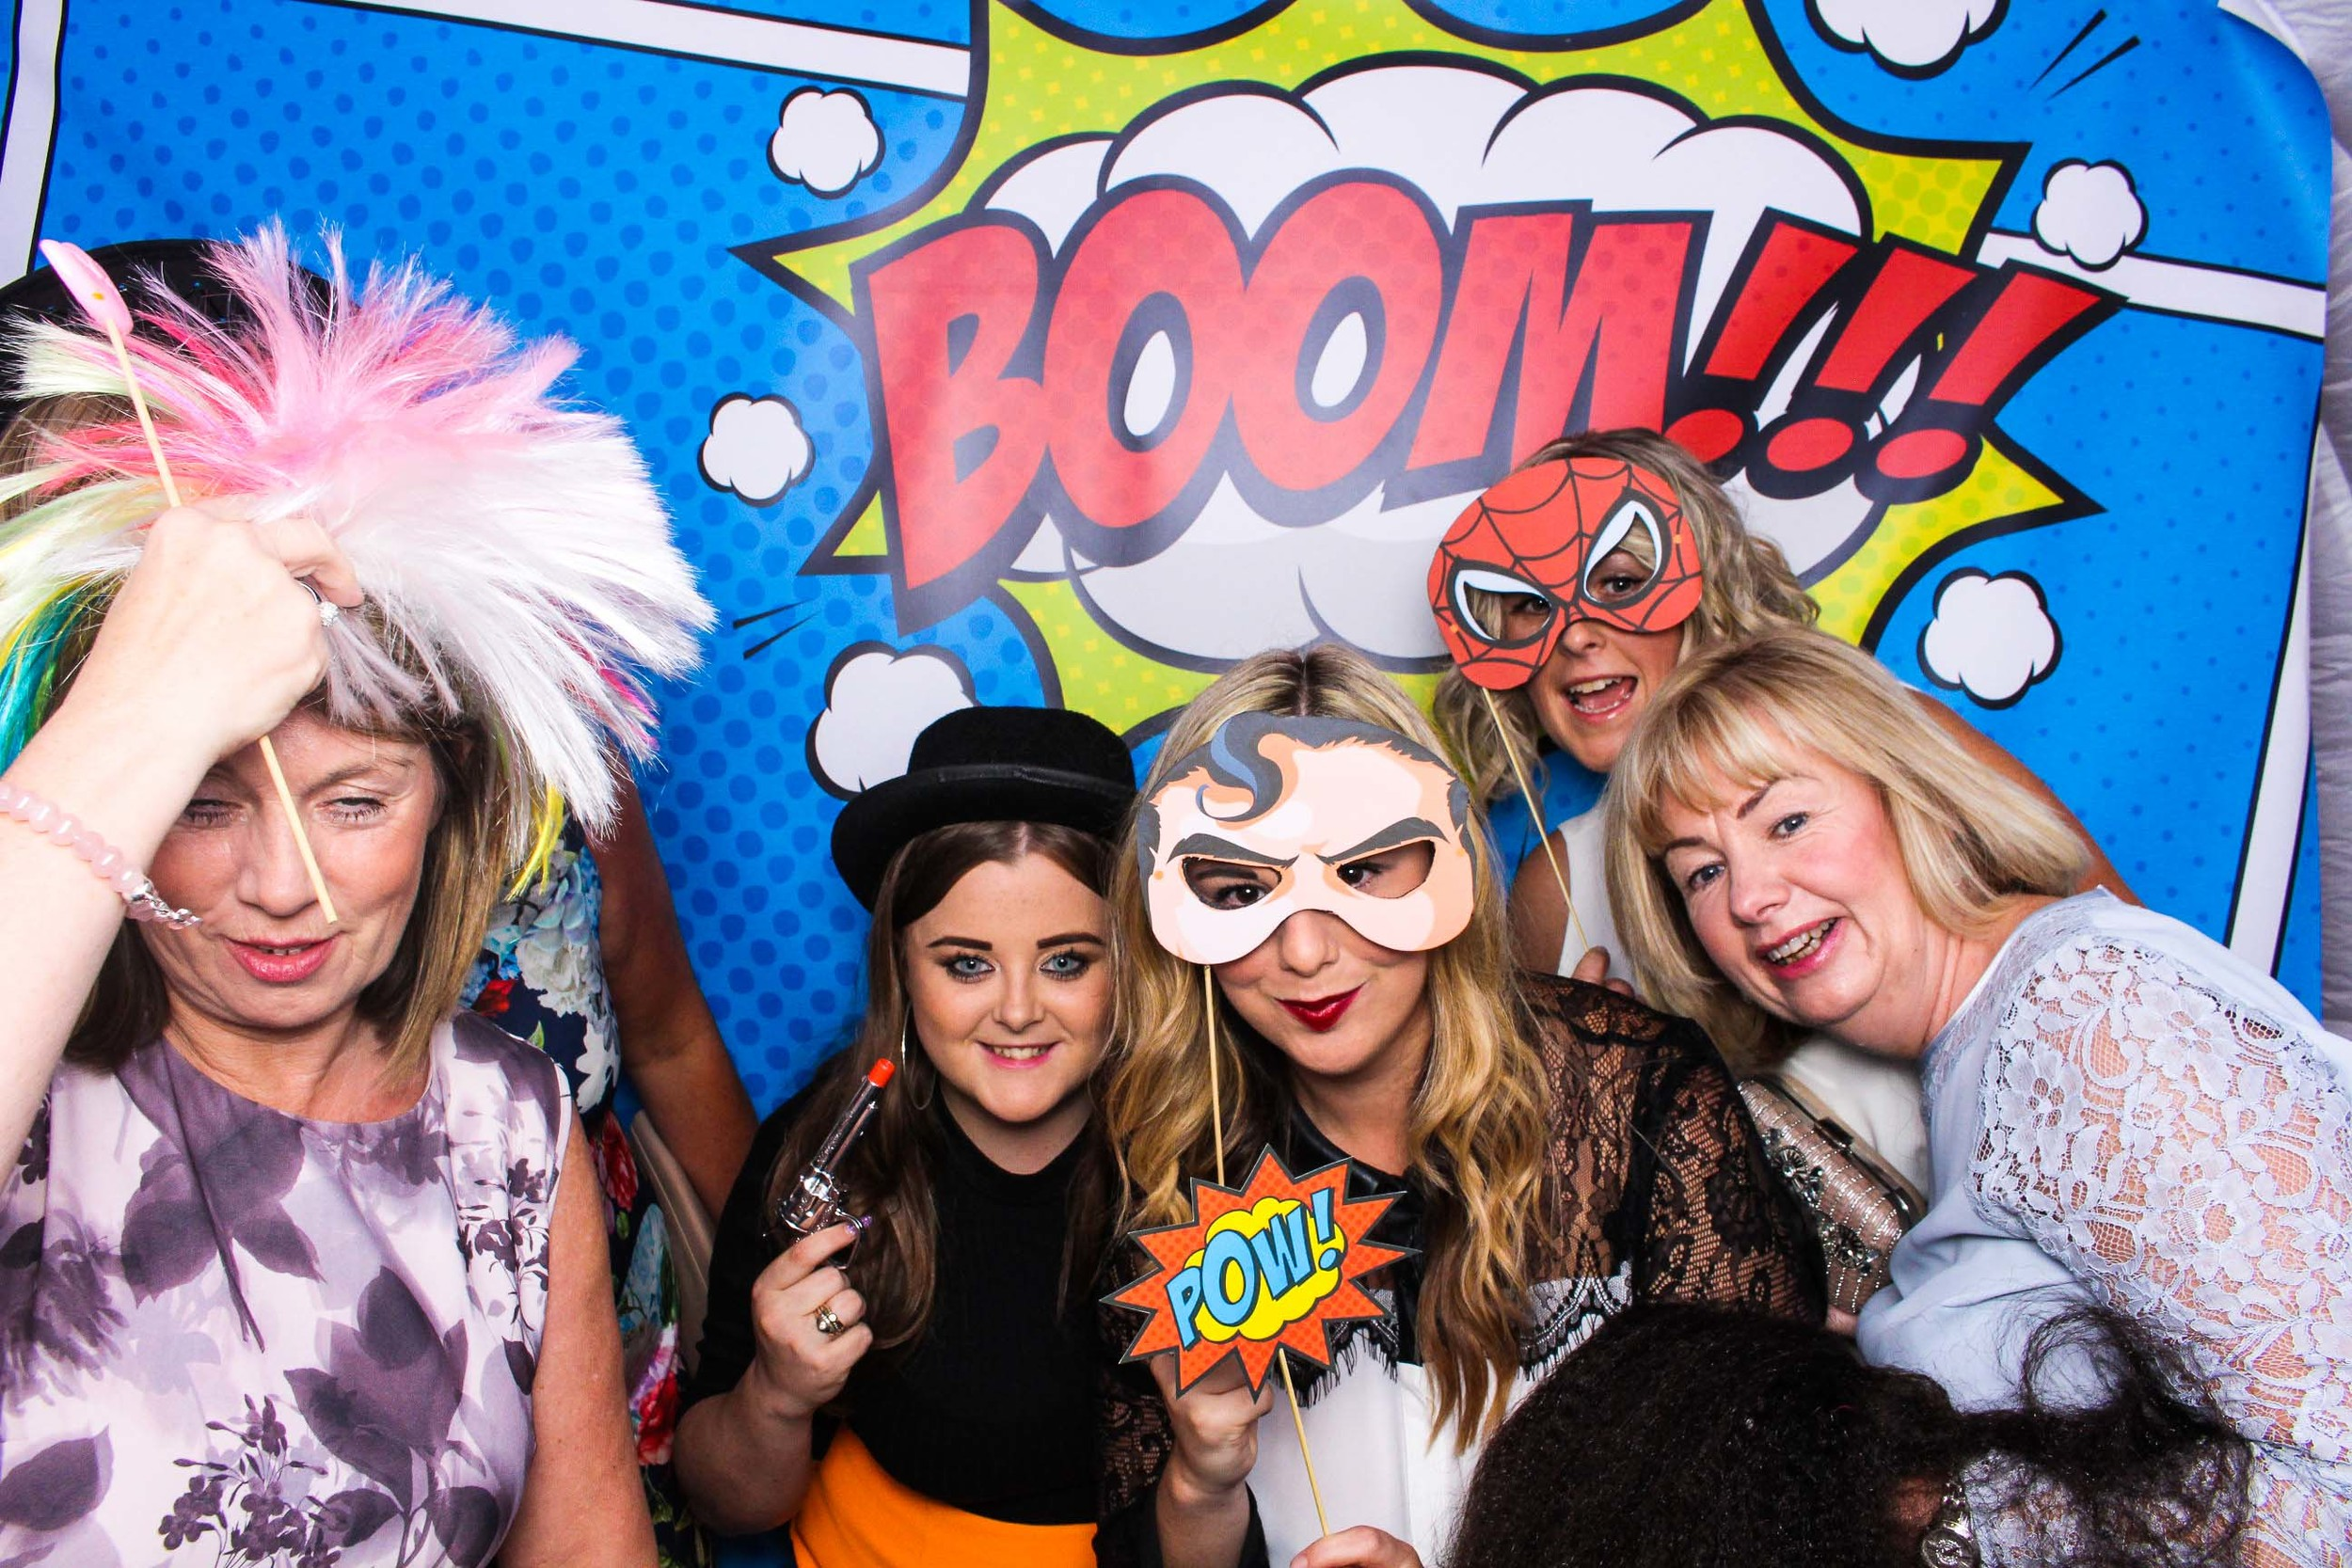 Fotoauto Photo Booth Hire - Shop Direct-26.jpg